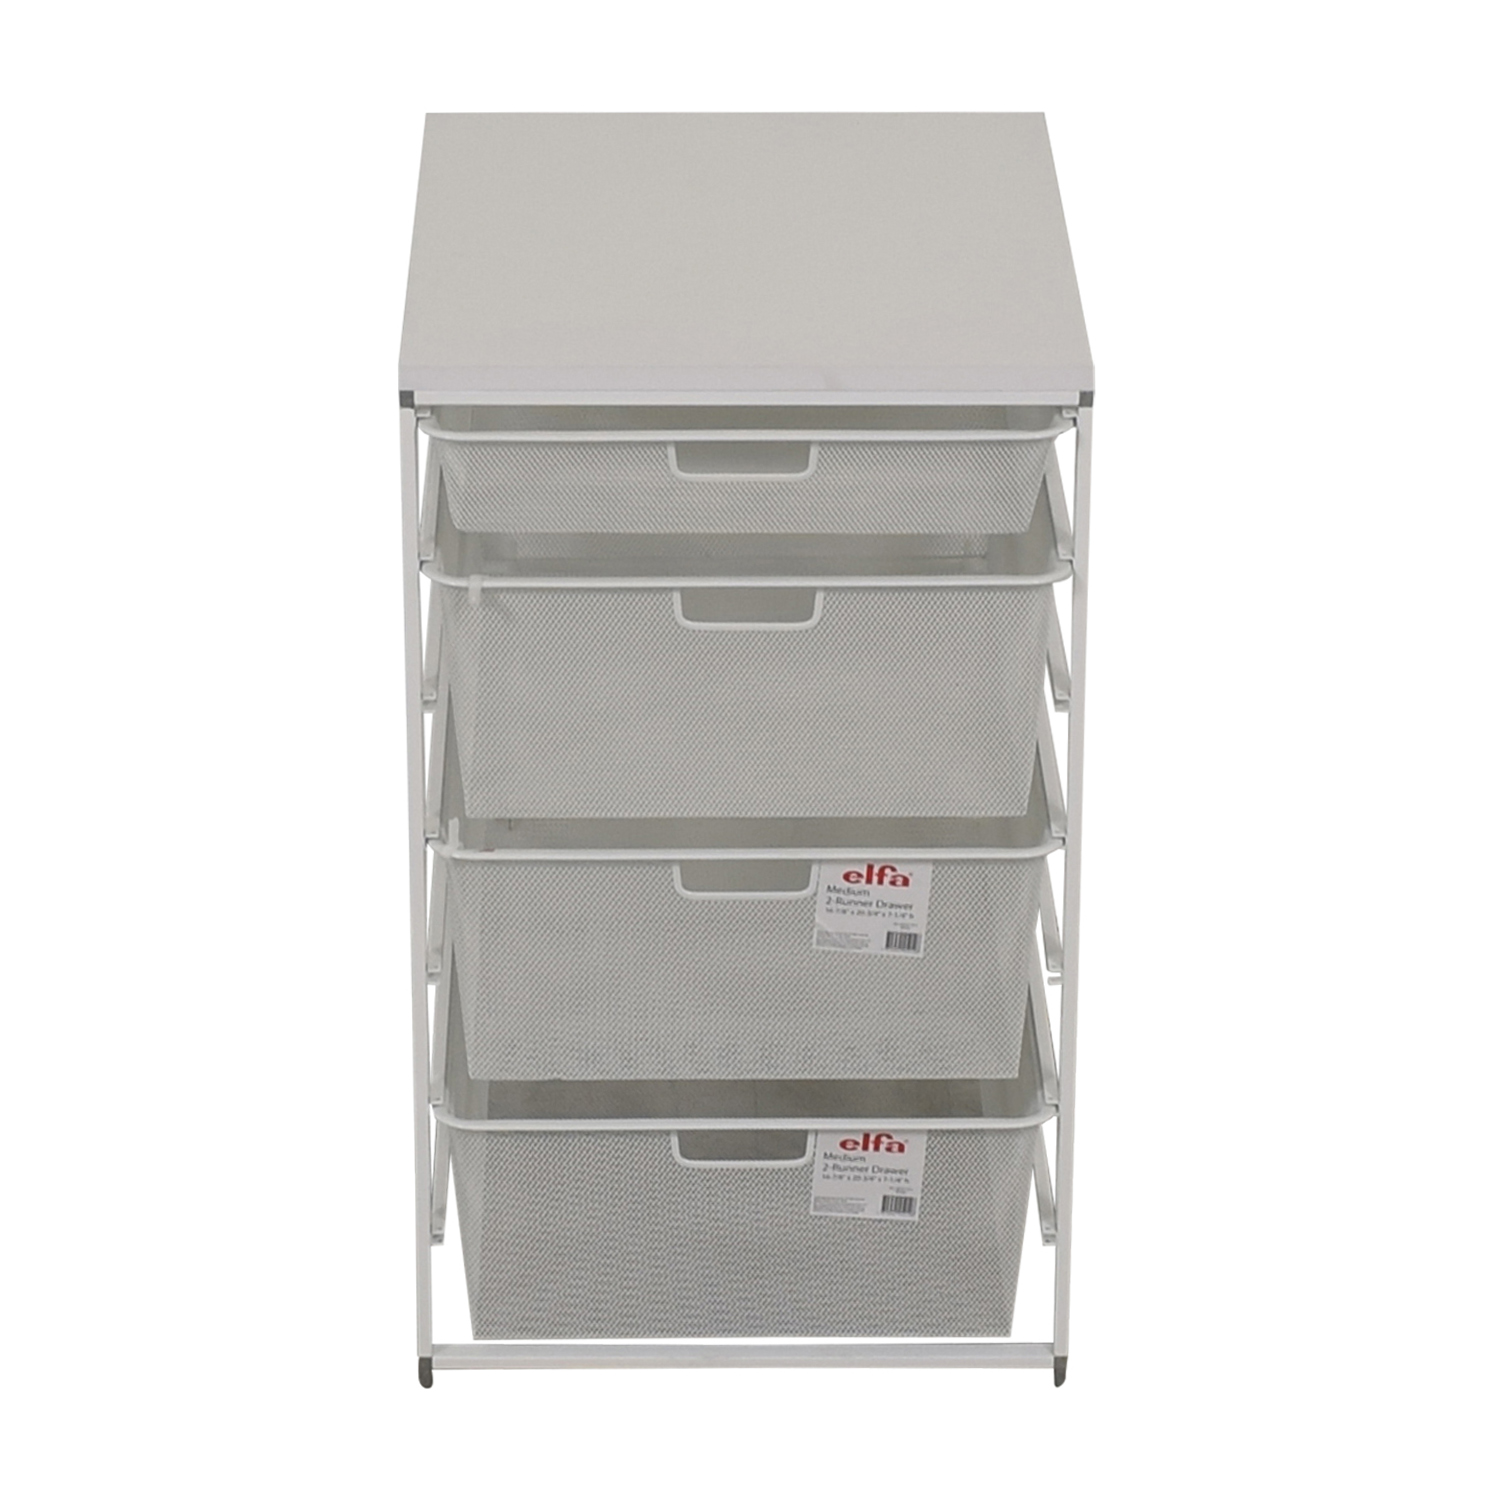 Elfa Elfa  White Mesh Closet Drawers Filing & Bins